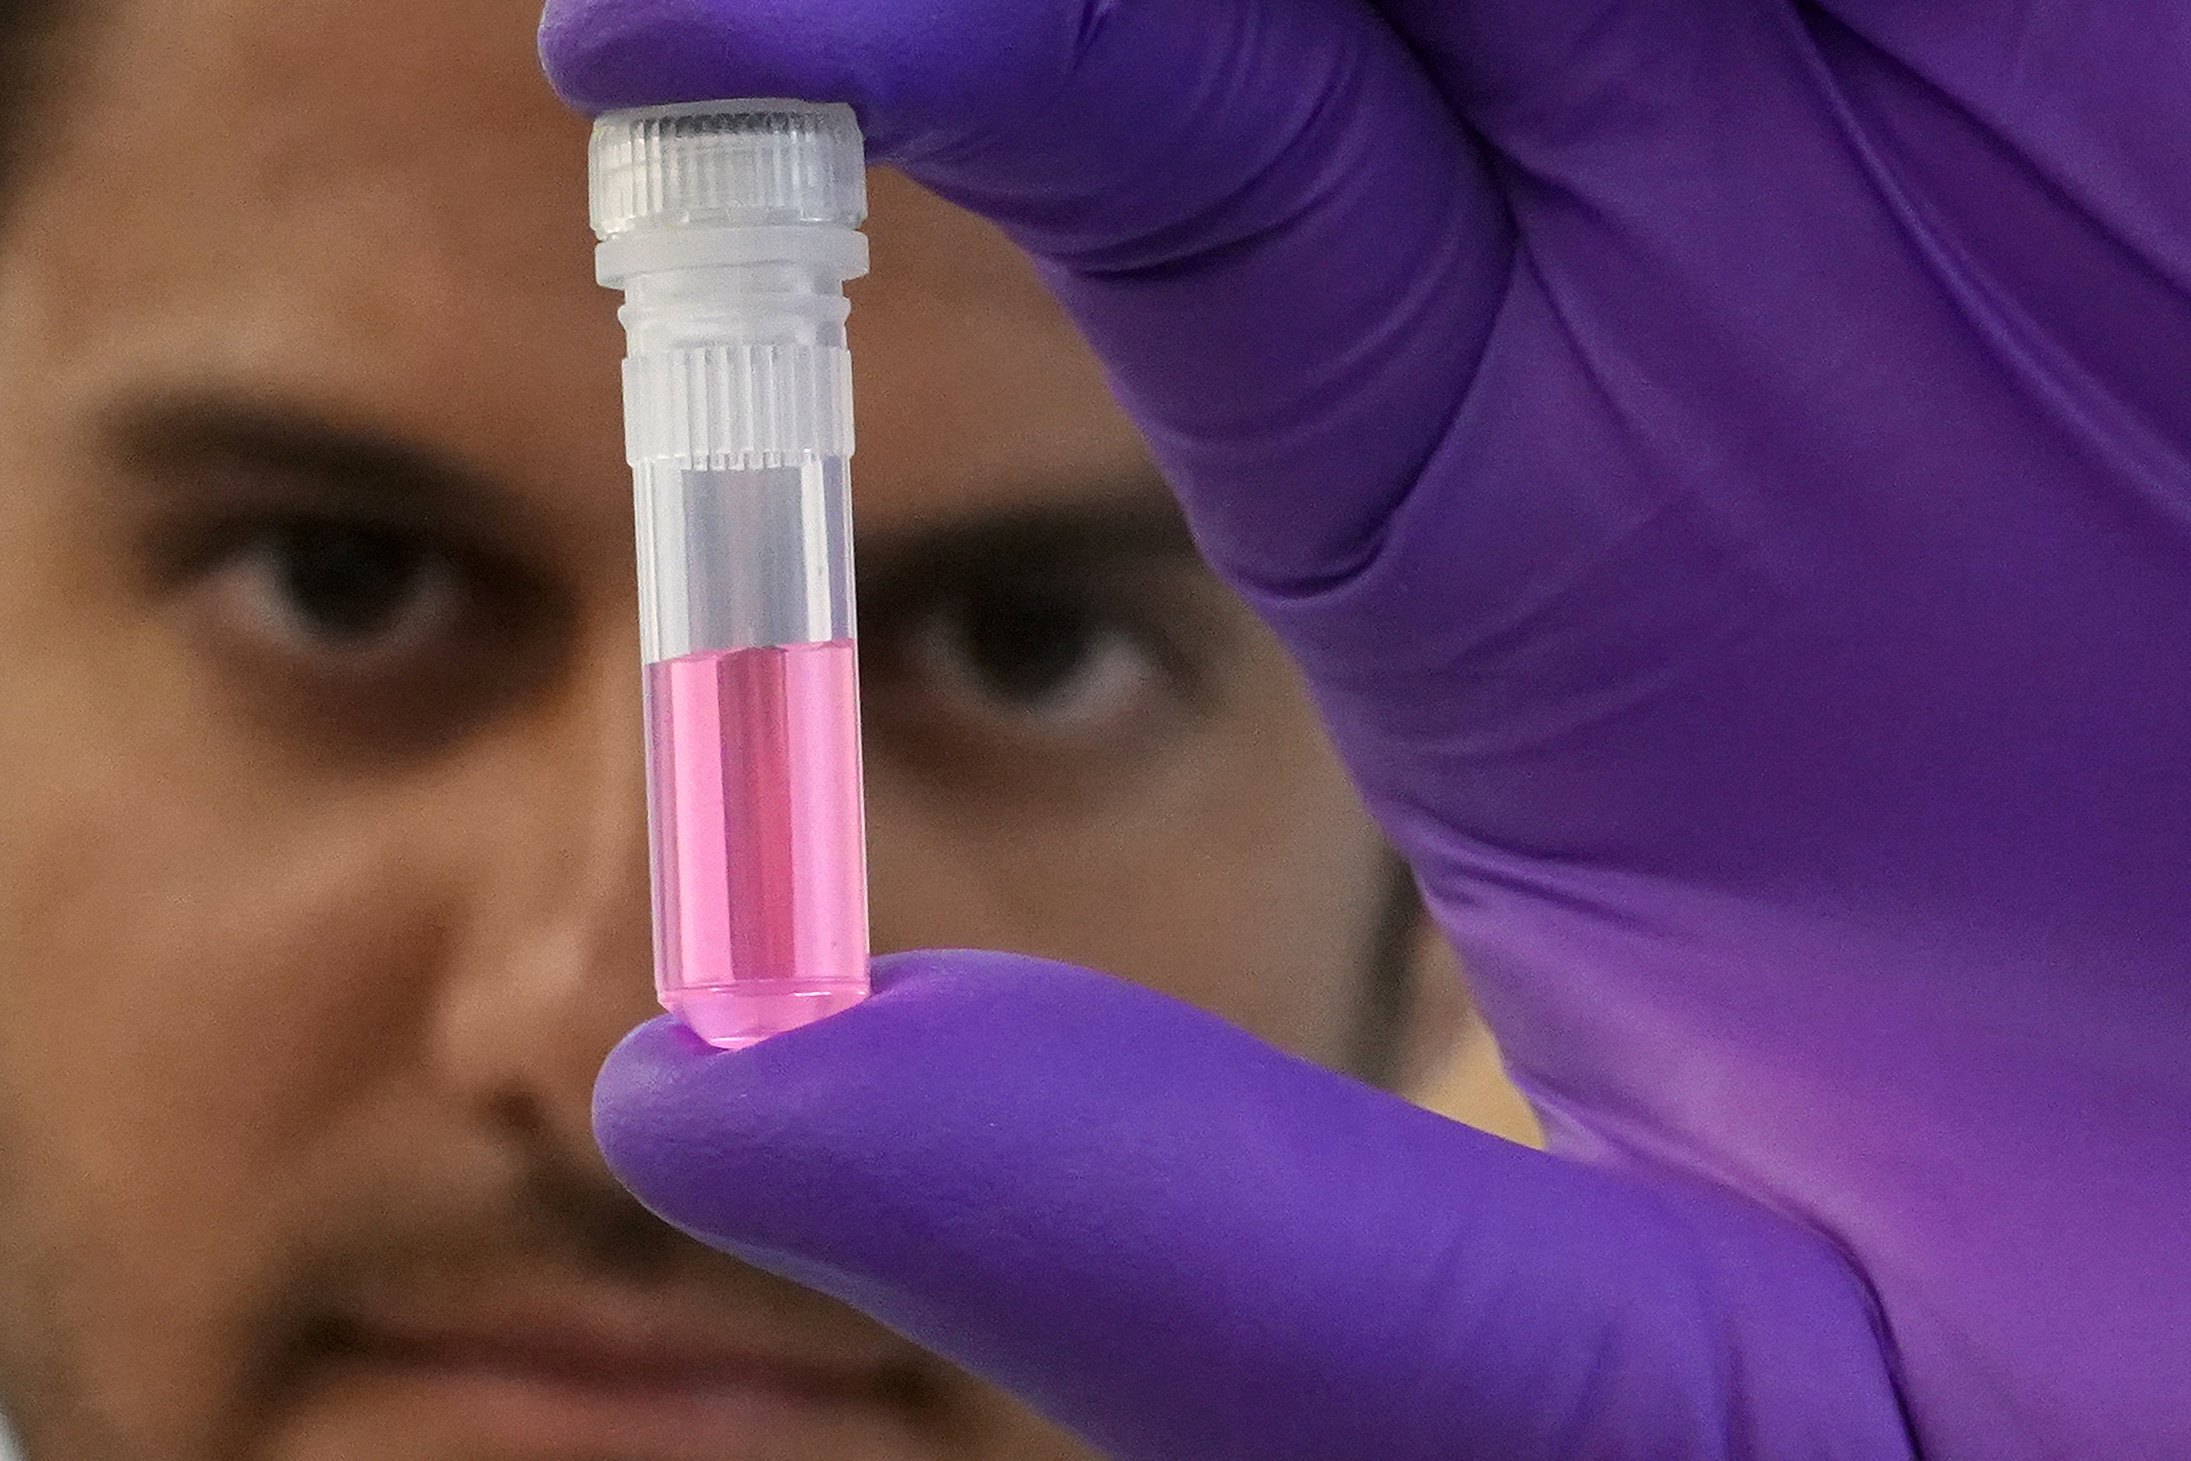 Andrew Schweighardt holds a vial with a DNA sample at the office of the Chief Medical Examiner of New York during an event in New York City, New York, U.S., September 6, 2018. REUTERS/Carlo Allegri